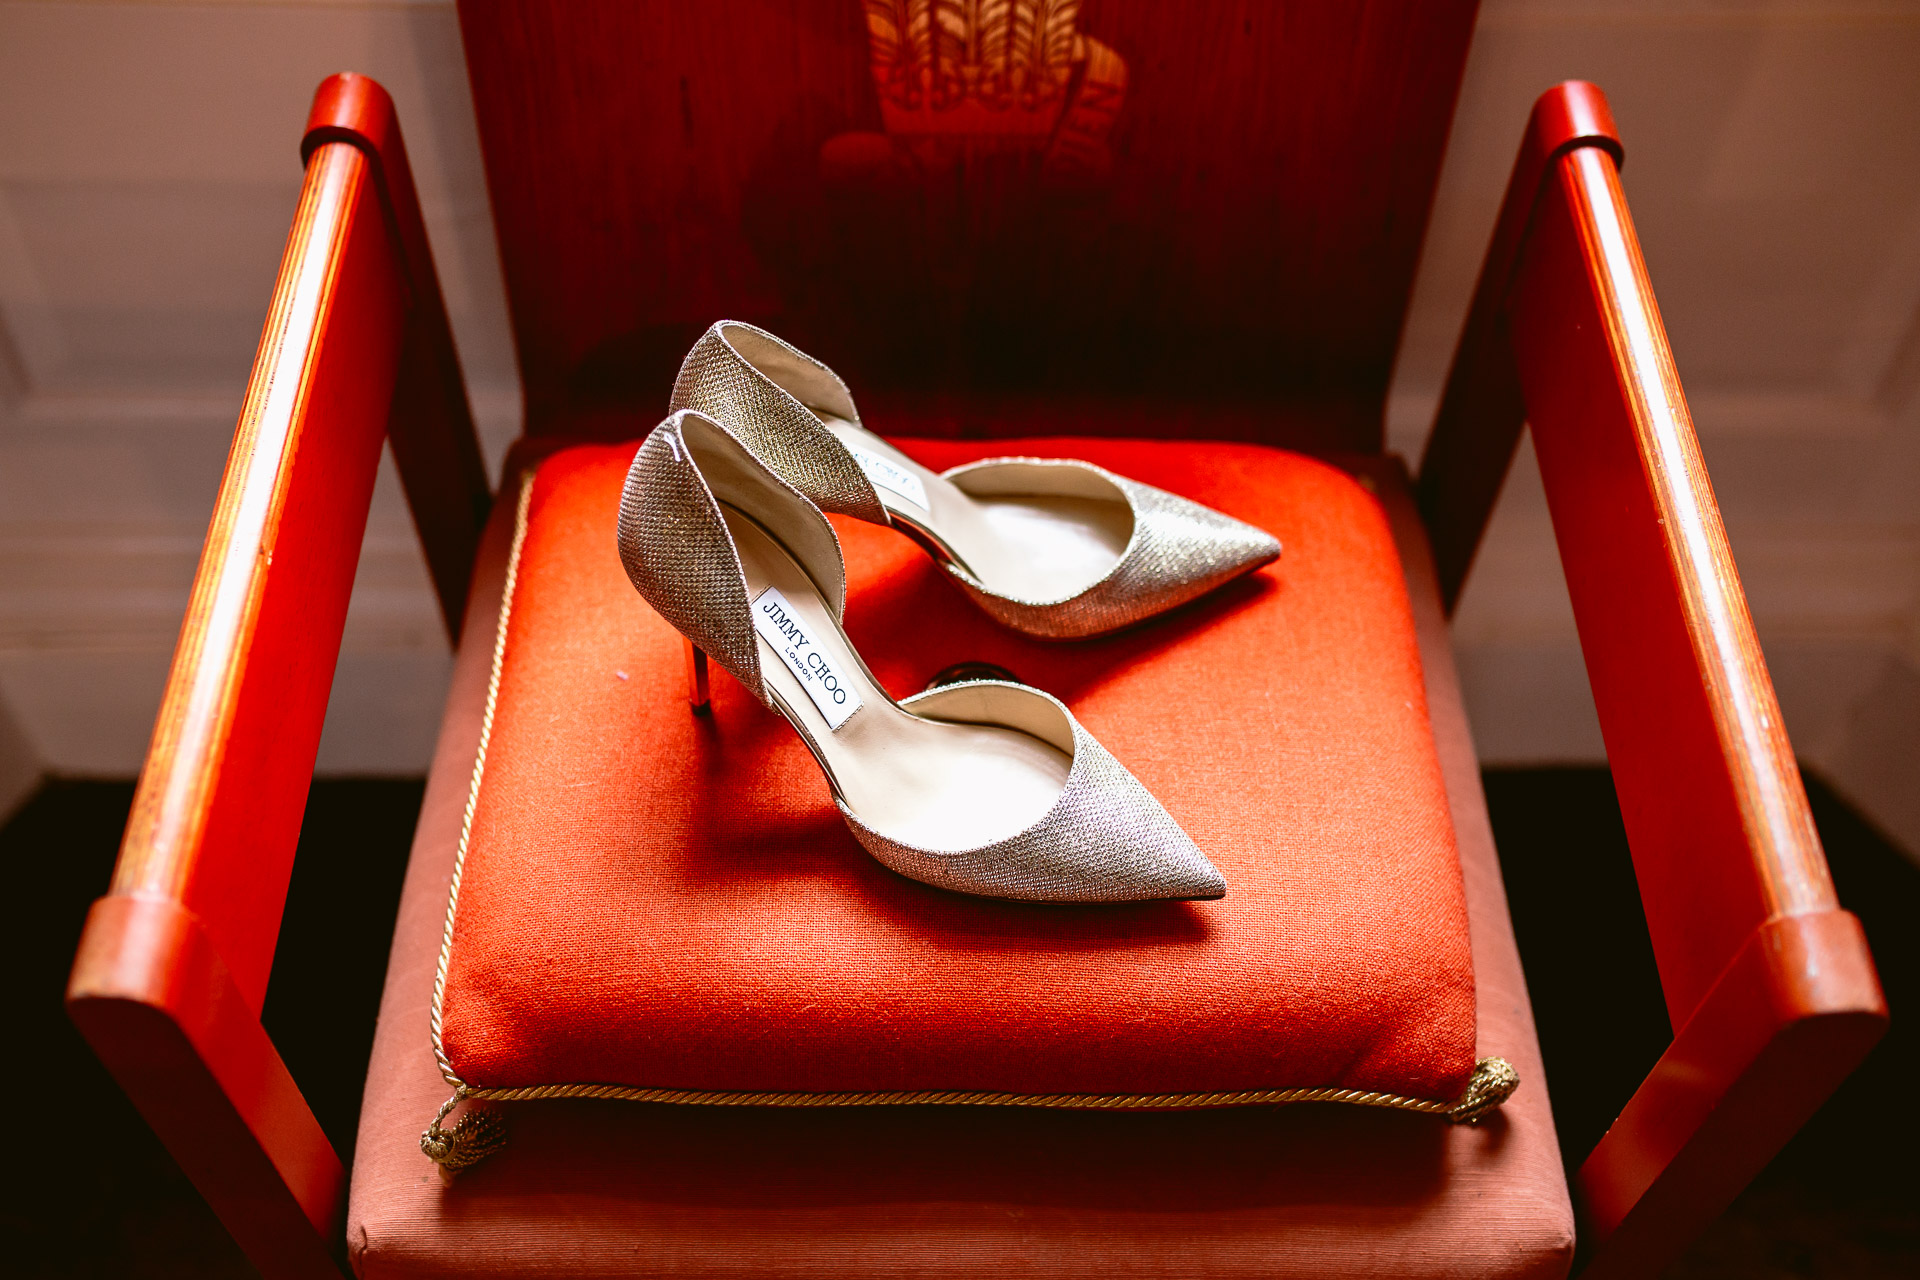 bridal shoes Jimmy Choo standing on the orange cushion in Fonmon Castle